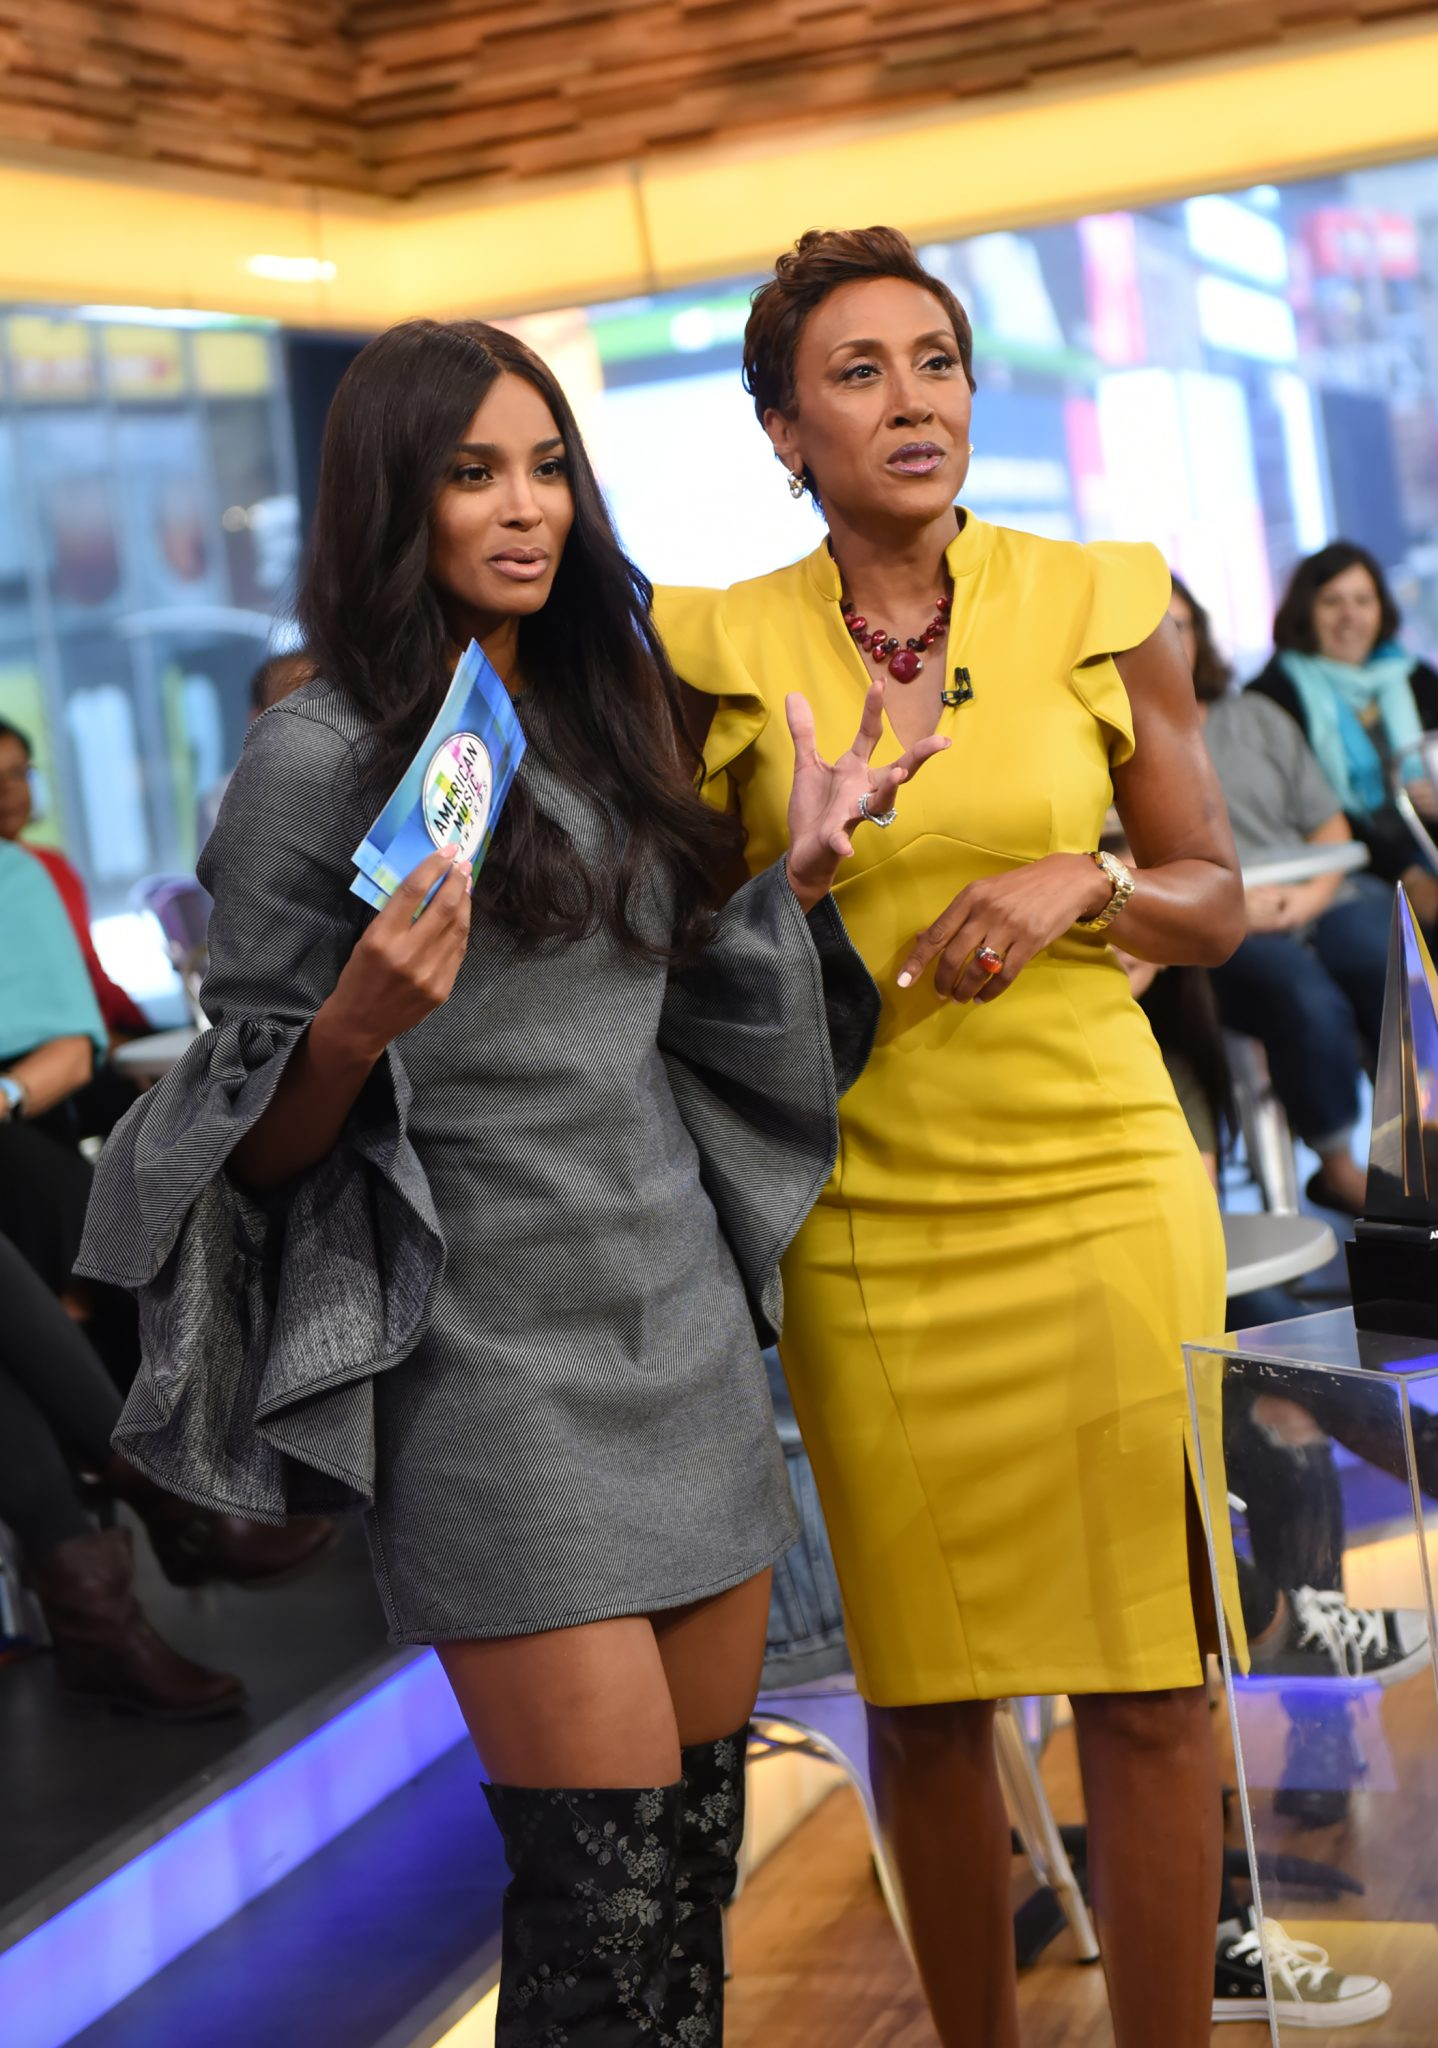 In Case You Missed It: Ciara On Good Morning America